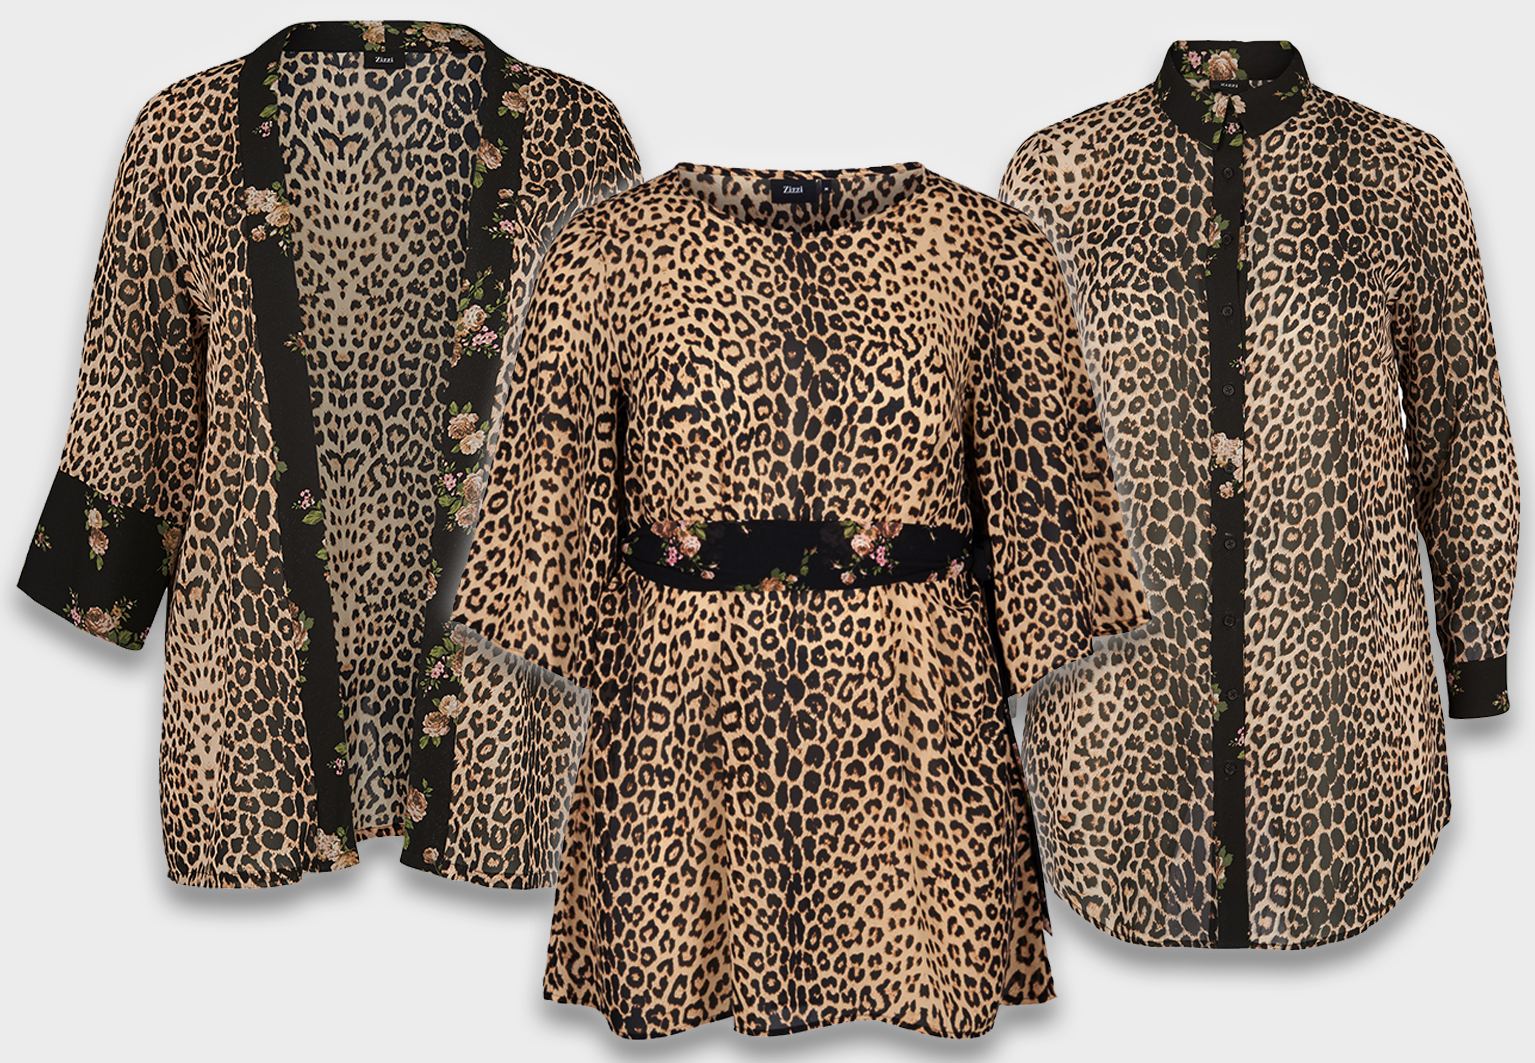 Plus size fashion leopard prints